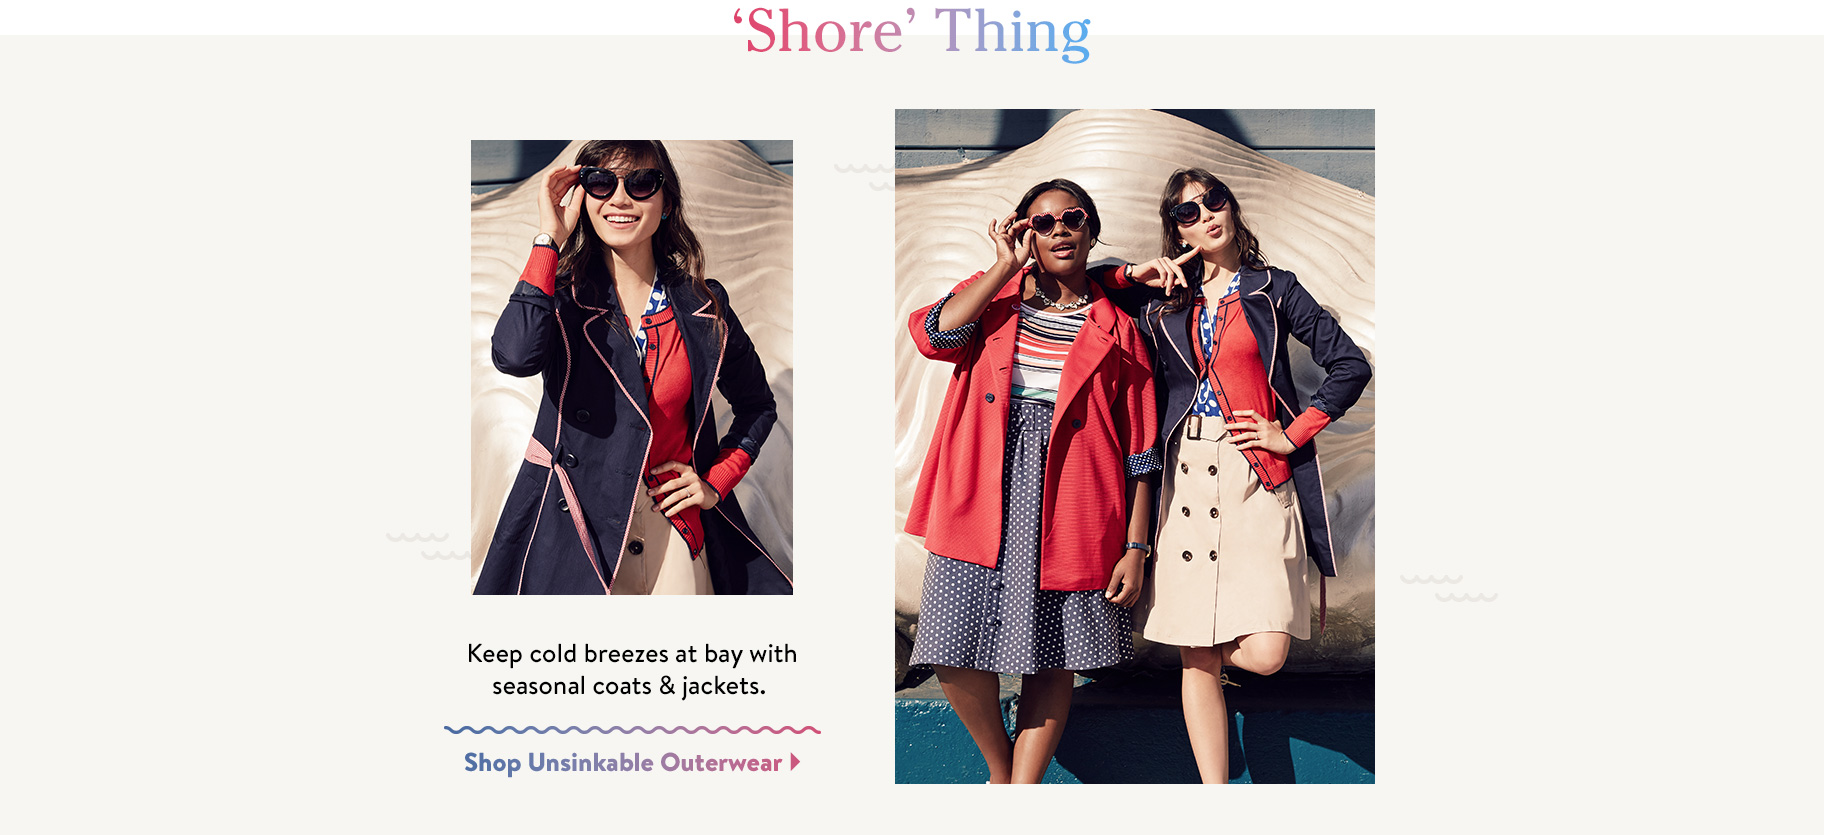 'Shore' Thing. Keep cold breezes at bay with seasonal coats & jackets. Shop Unsinkable Outerwear.